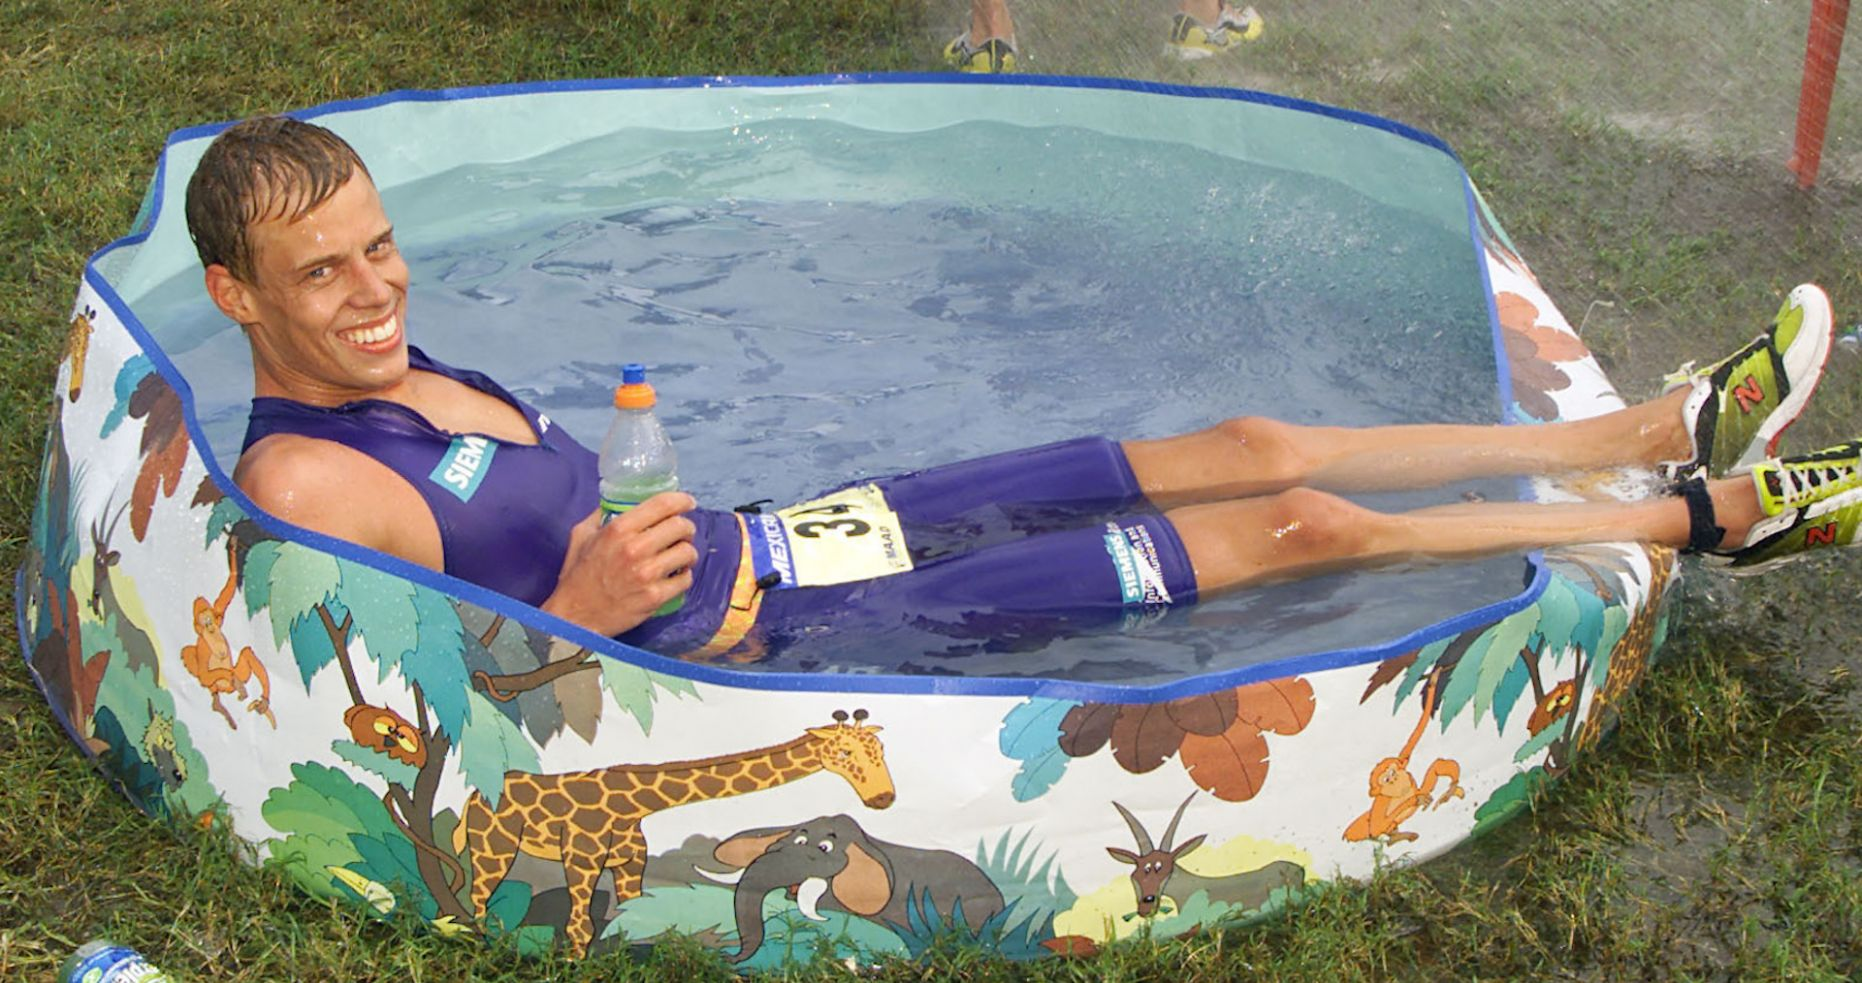 Buy a kiddie pool for your adult self this summer - kiddie pool ideas for adults